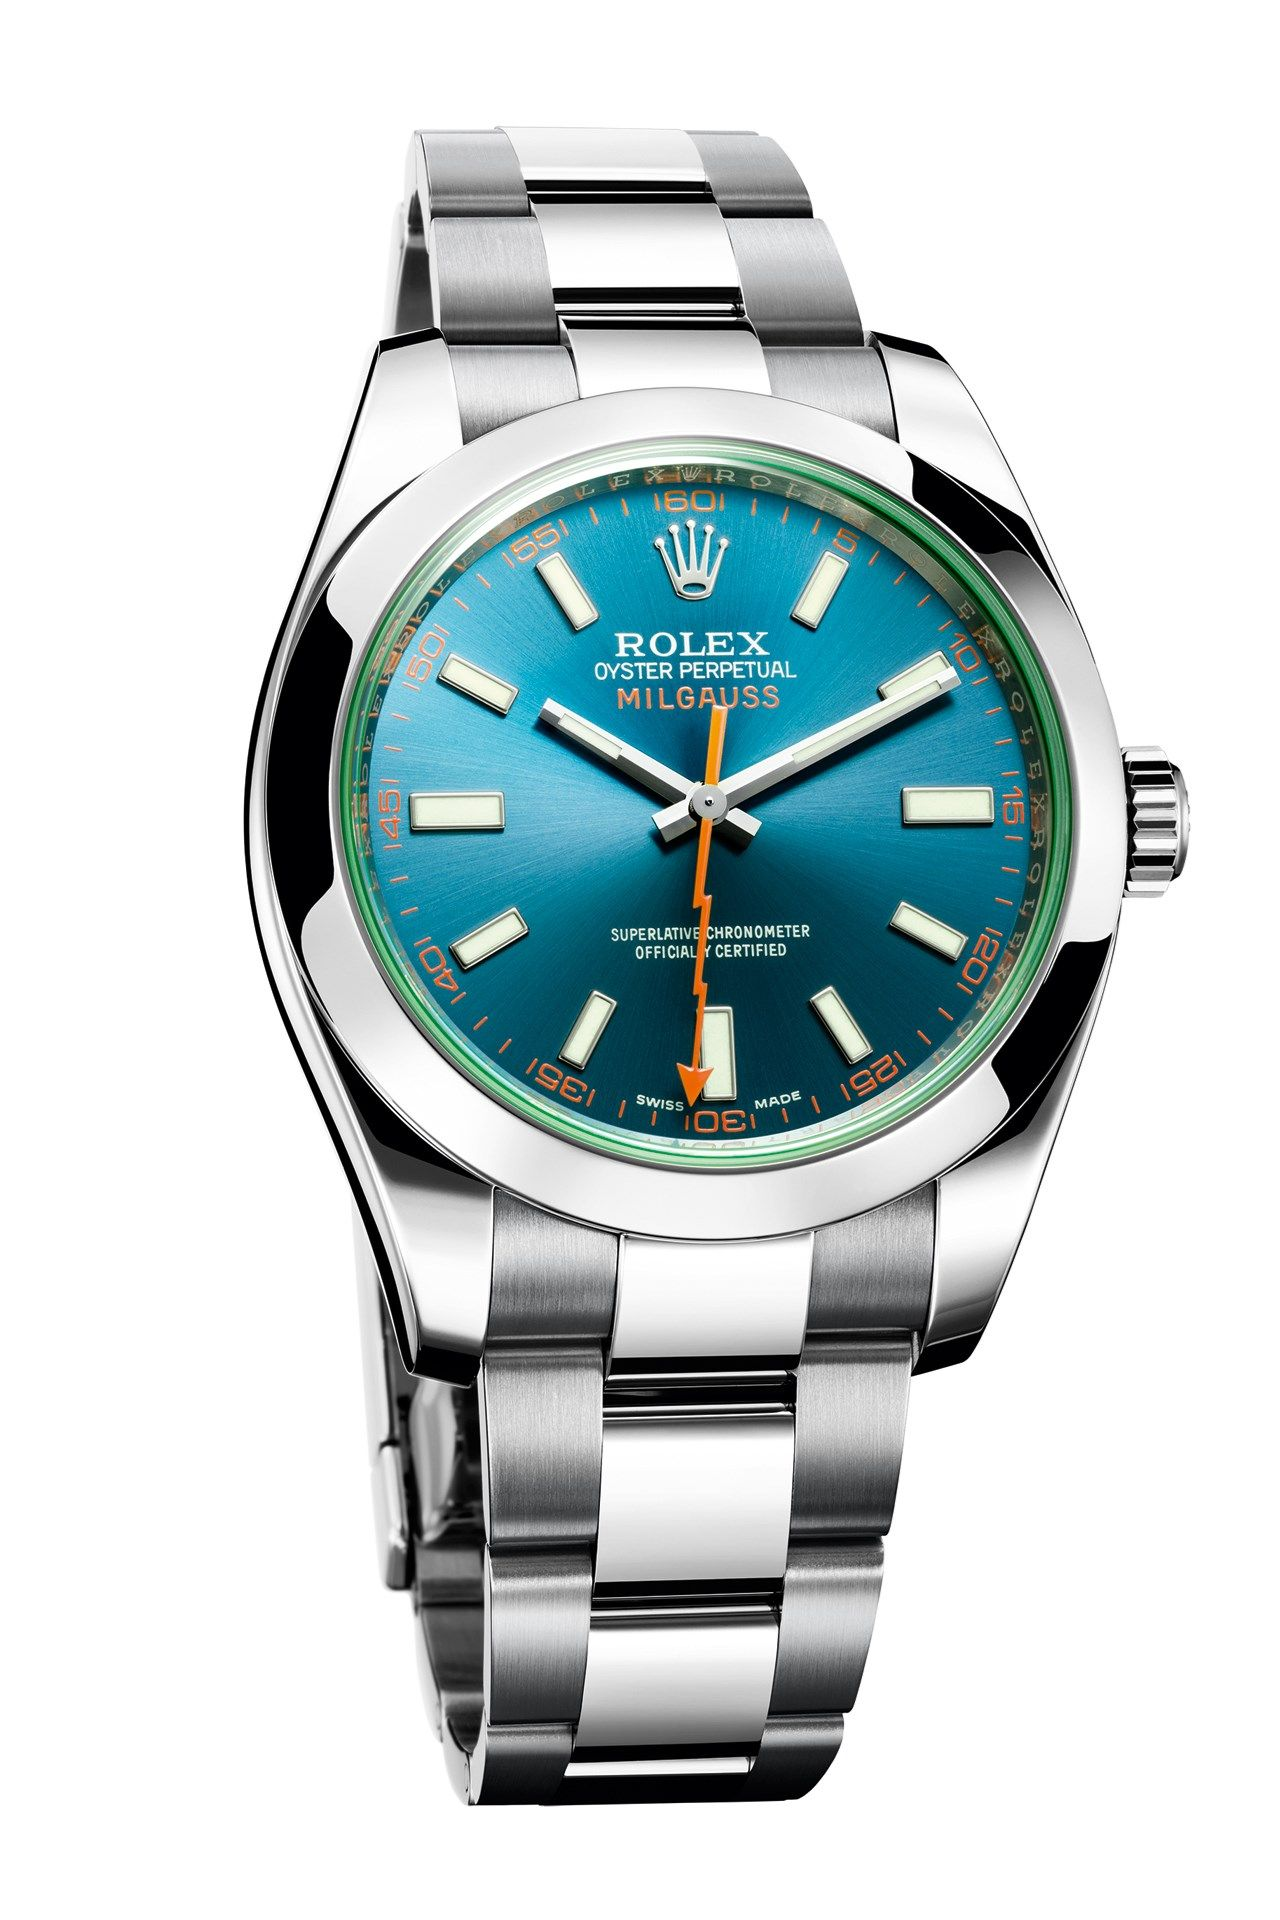 A closer look at the new rolex oyster perpetual milgauss watch british gq for Rolex milgauss